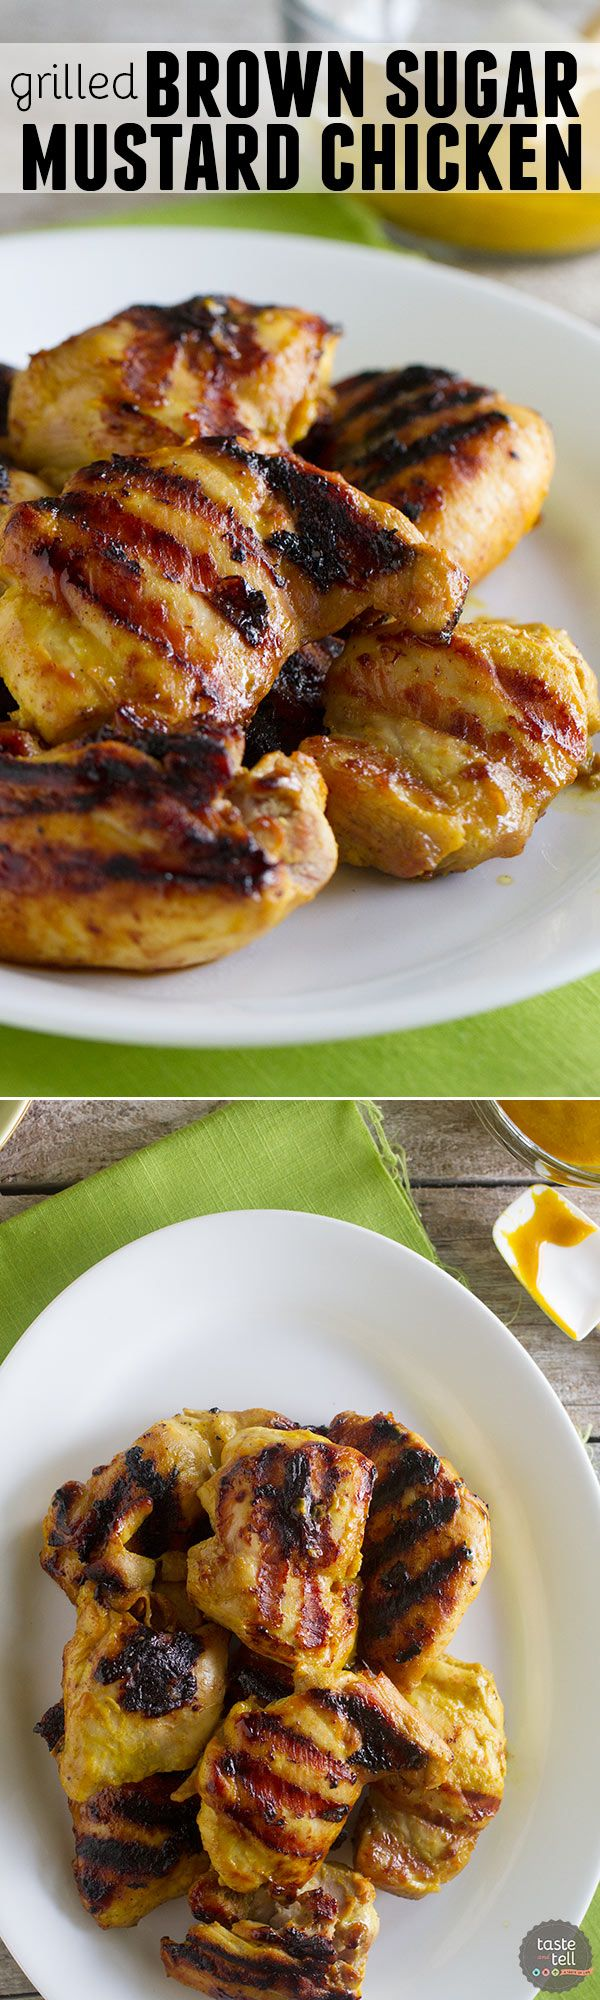 Need dinner on the table in a flash? This Grilled Brown Sugar Mustard Chicken is your answer! Chicken is grilled in a sweet mustard sauce and on the table in 20 minutes.